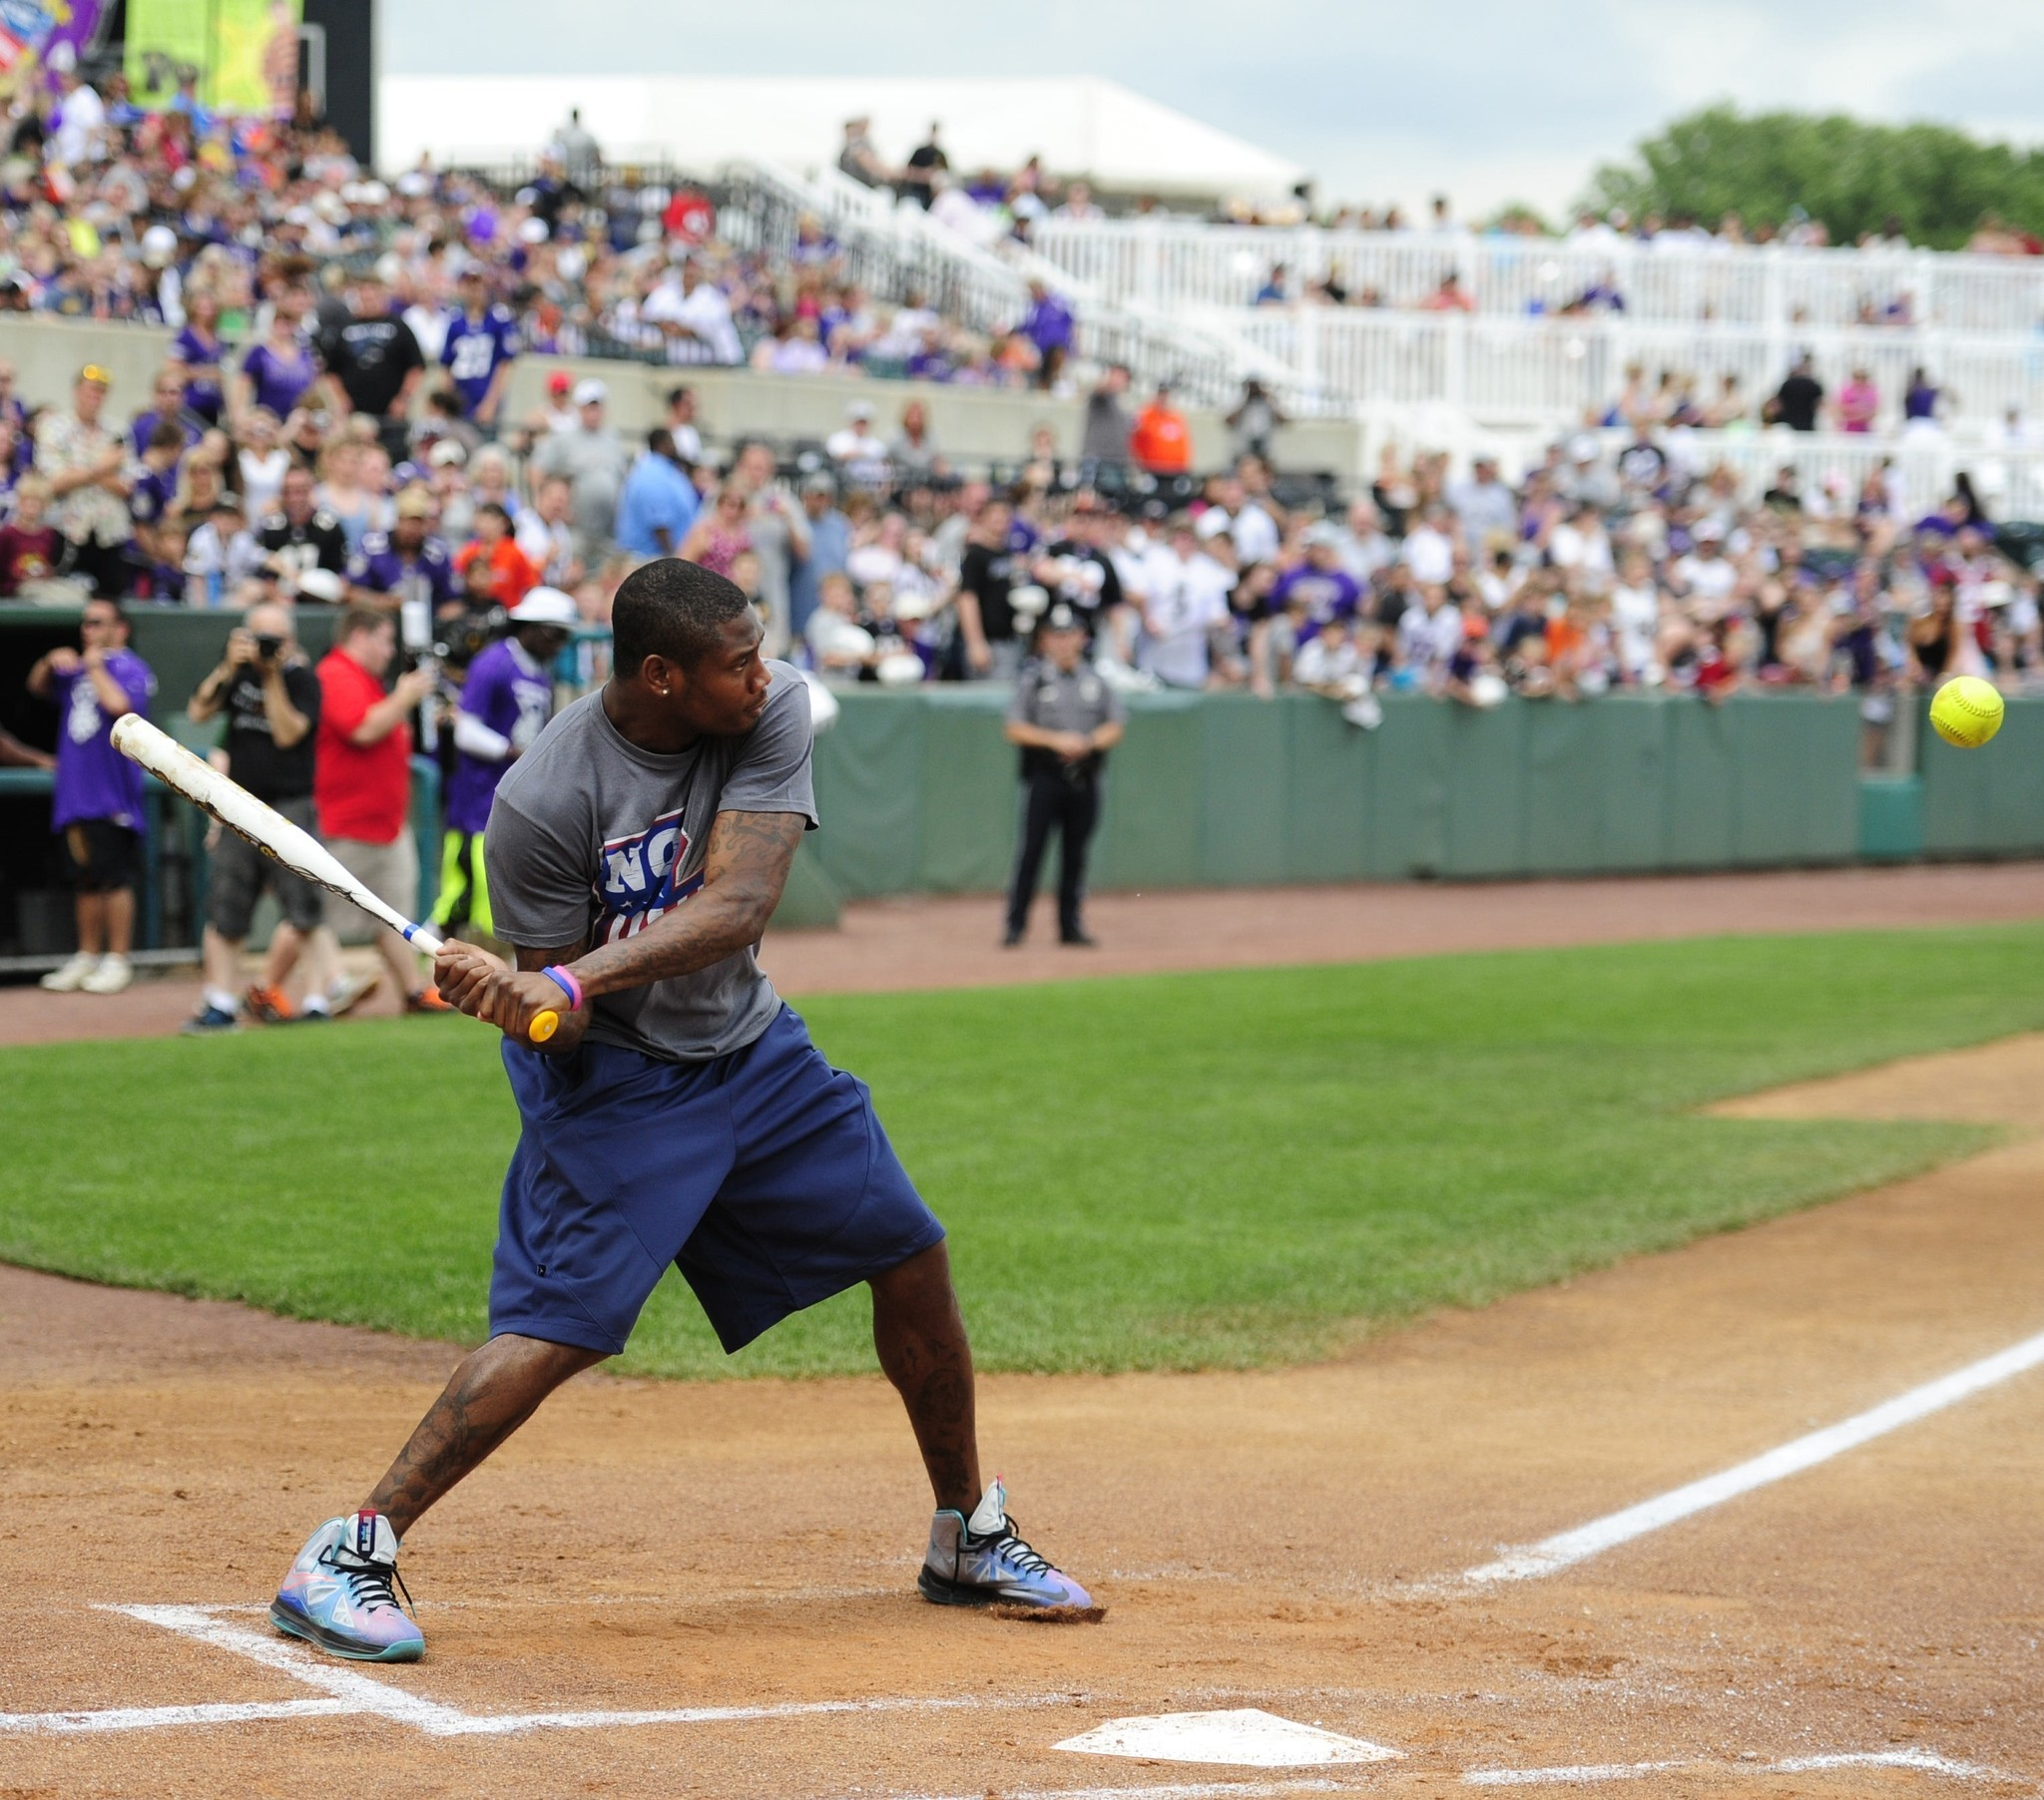 Bal-now-at-the-plate-former-ravens-wide-receiver-jacoby-jones-nope-wrong-one-20170328